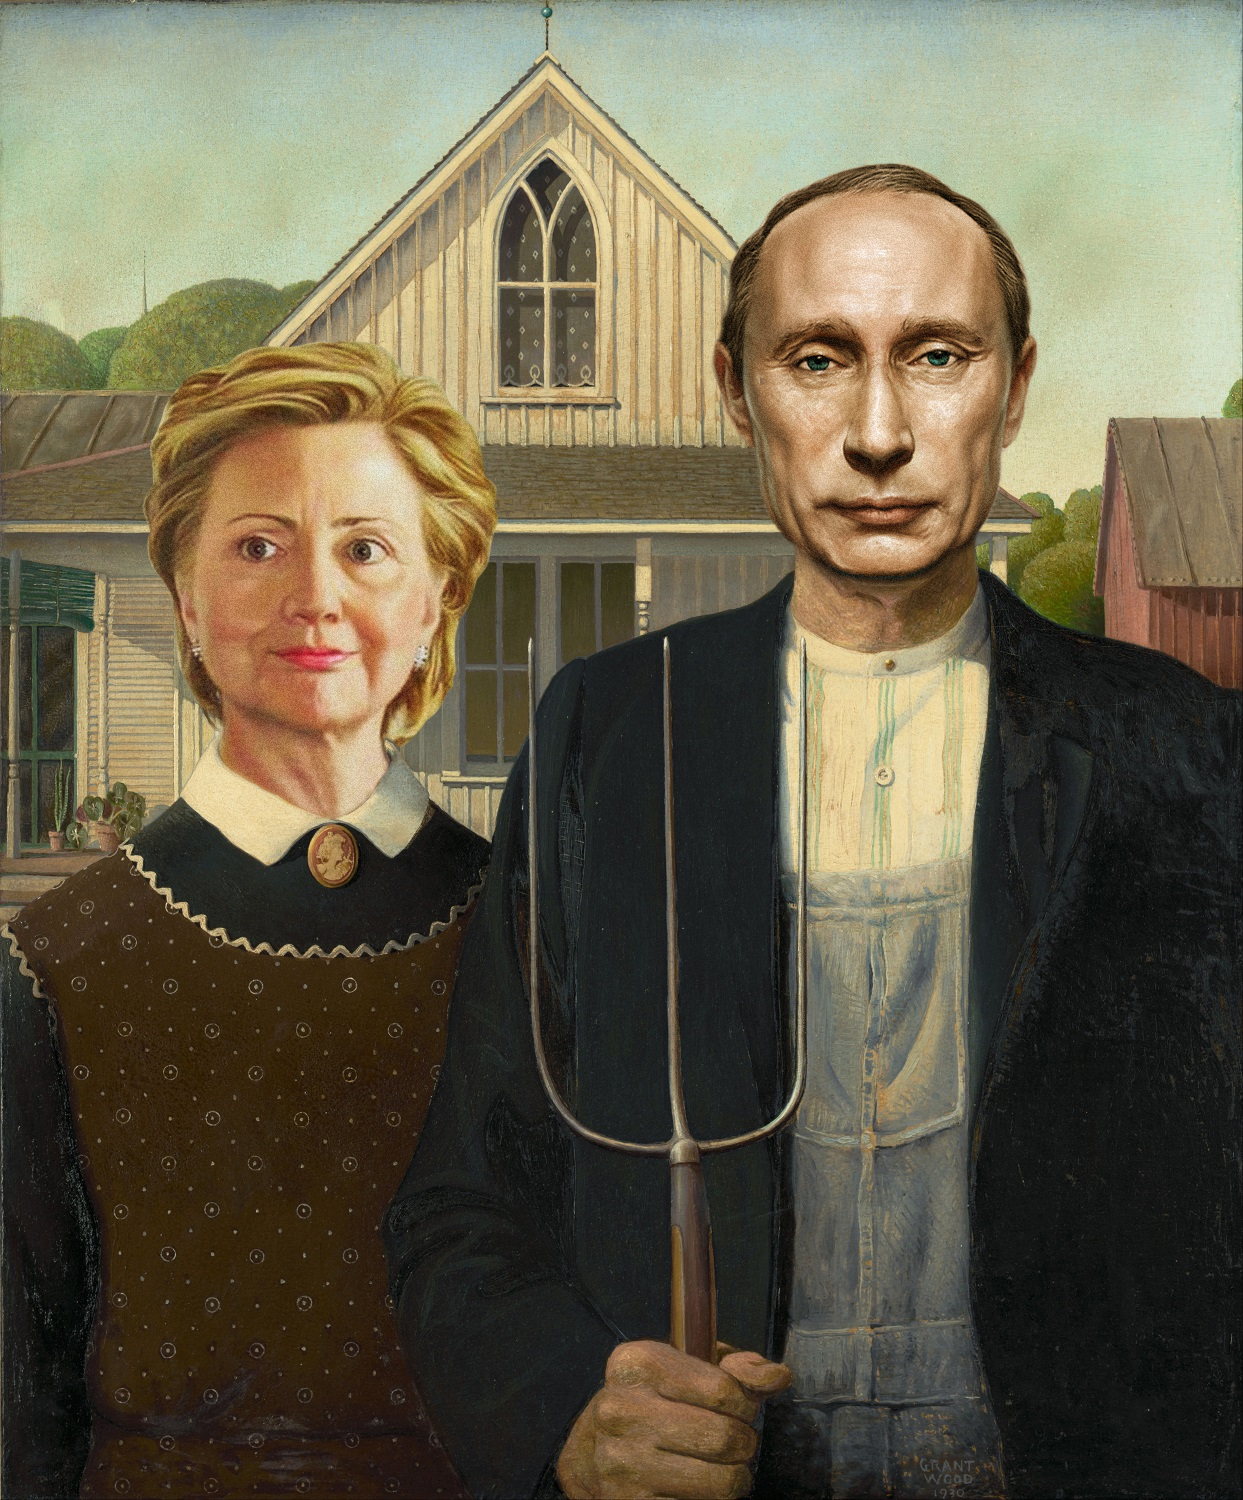 Vladimir Putin and Hillary Clinton in American Gothic